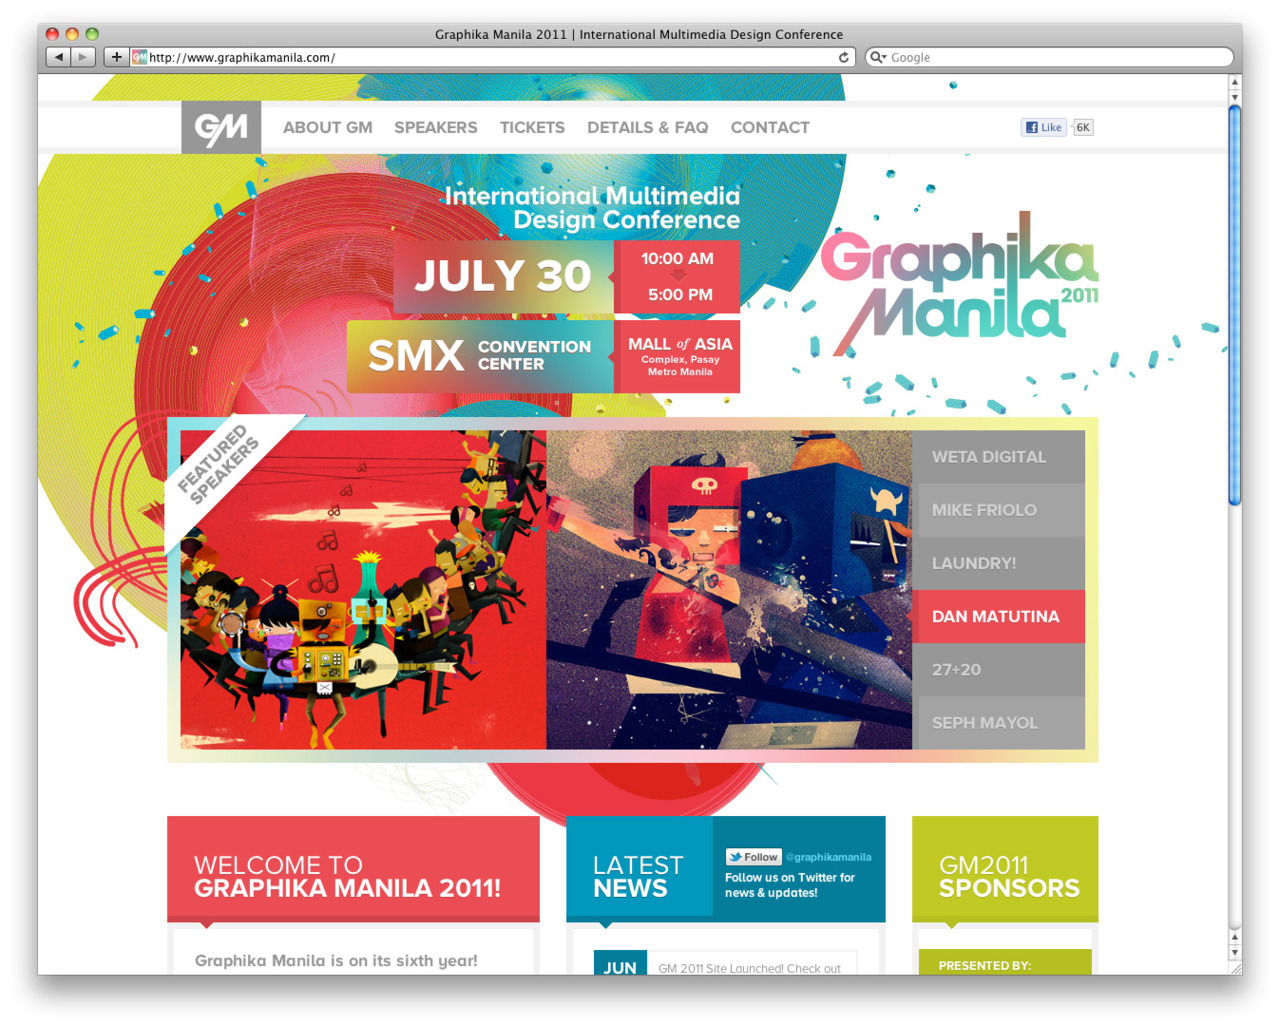 Just launched the new Graphika Manila 2011 website! http://www.graphikamanila.com/ Intenational Multimedia Design Conference on July 30 at SMX Convention Center, featuring WETA Digital, Mike Friolo, Laundry!, Dan Matutina, 27+20, and Seph Mayol. See you there! Design, logotype, and code by Create.ph. Branding and illustrations by Drew Europeo.